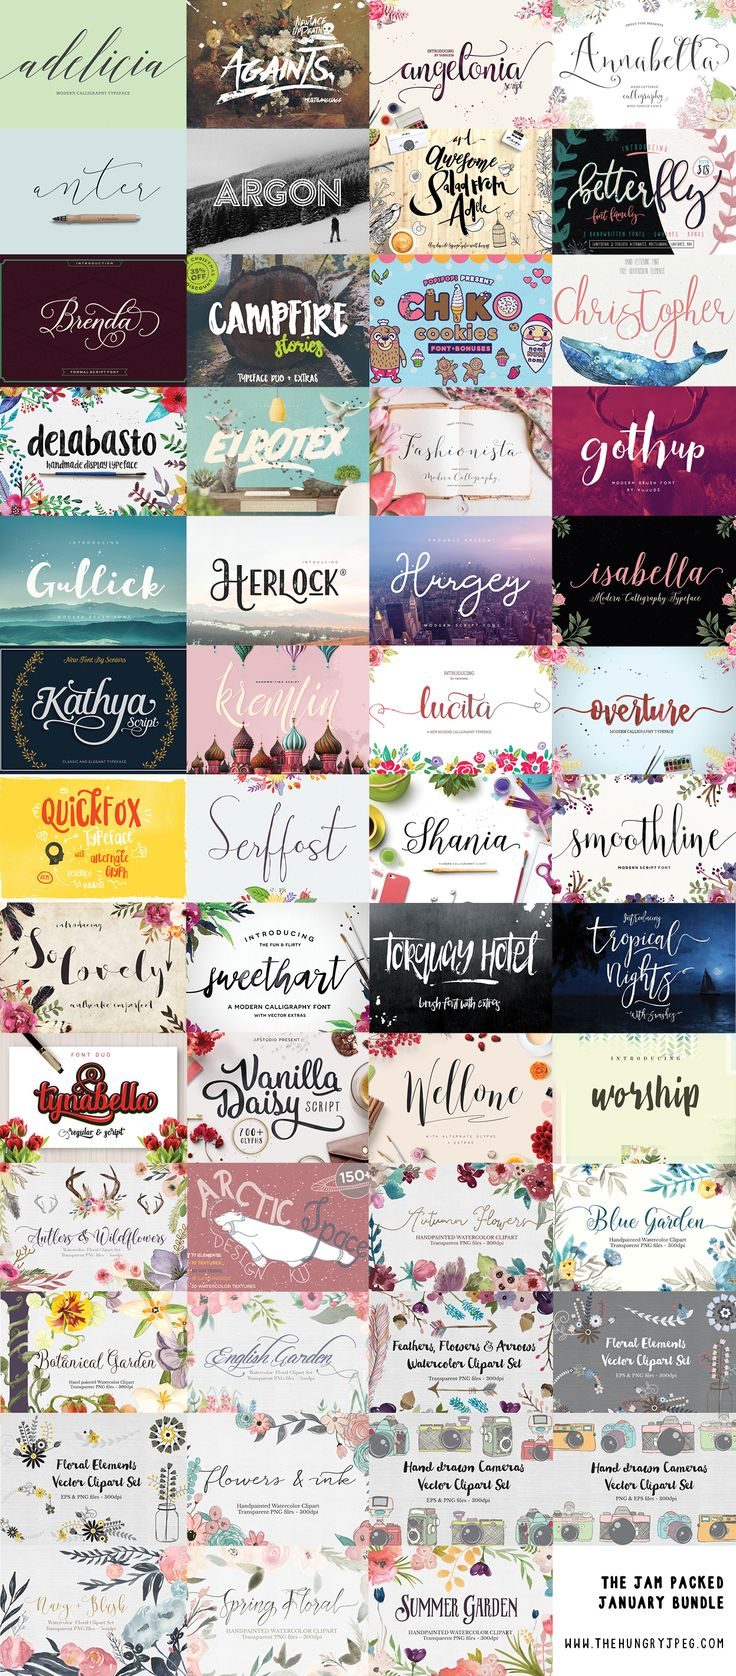 This bundle is arguably the best bundle we've ever put together! The quality of the items included is so high you'll keep going back for more! With an incredible 36 premium fonts and 15 graphics packs, this one is definitely a keeper! Take a look for yourself and remember, once it's gone, it's gone! We are starting 2016 off with one of our best ever font deals.